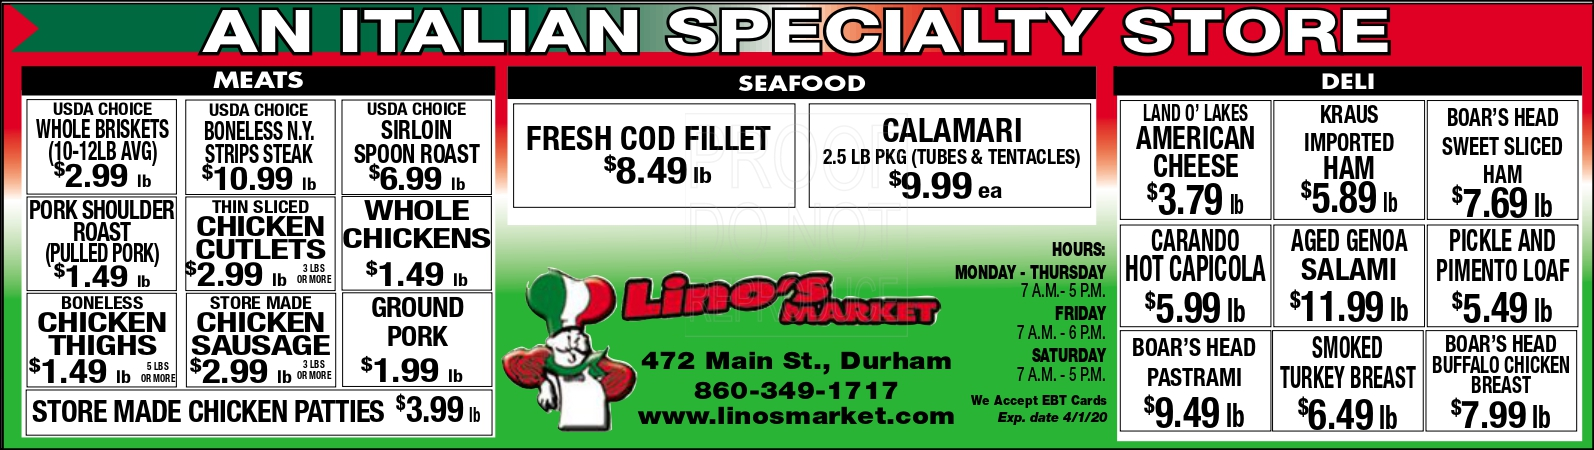 Lino's Market Specials expiring 4/1/2020. Click on link to view